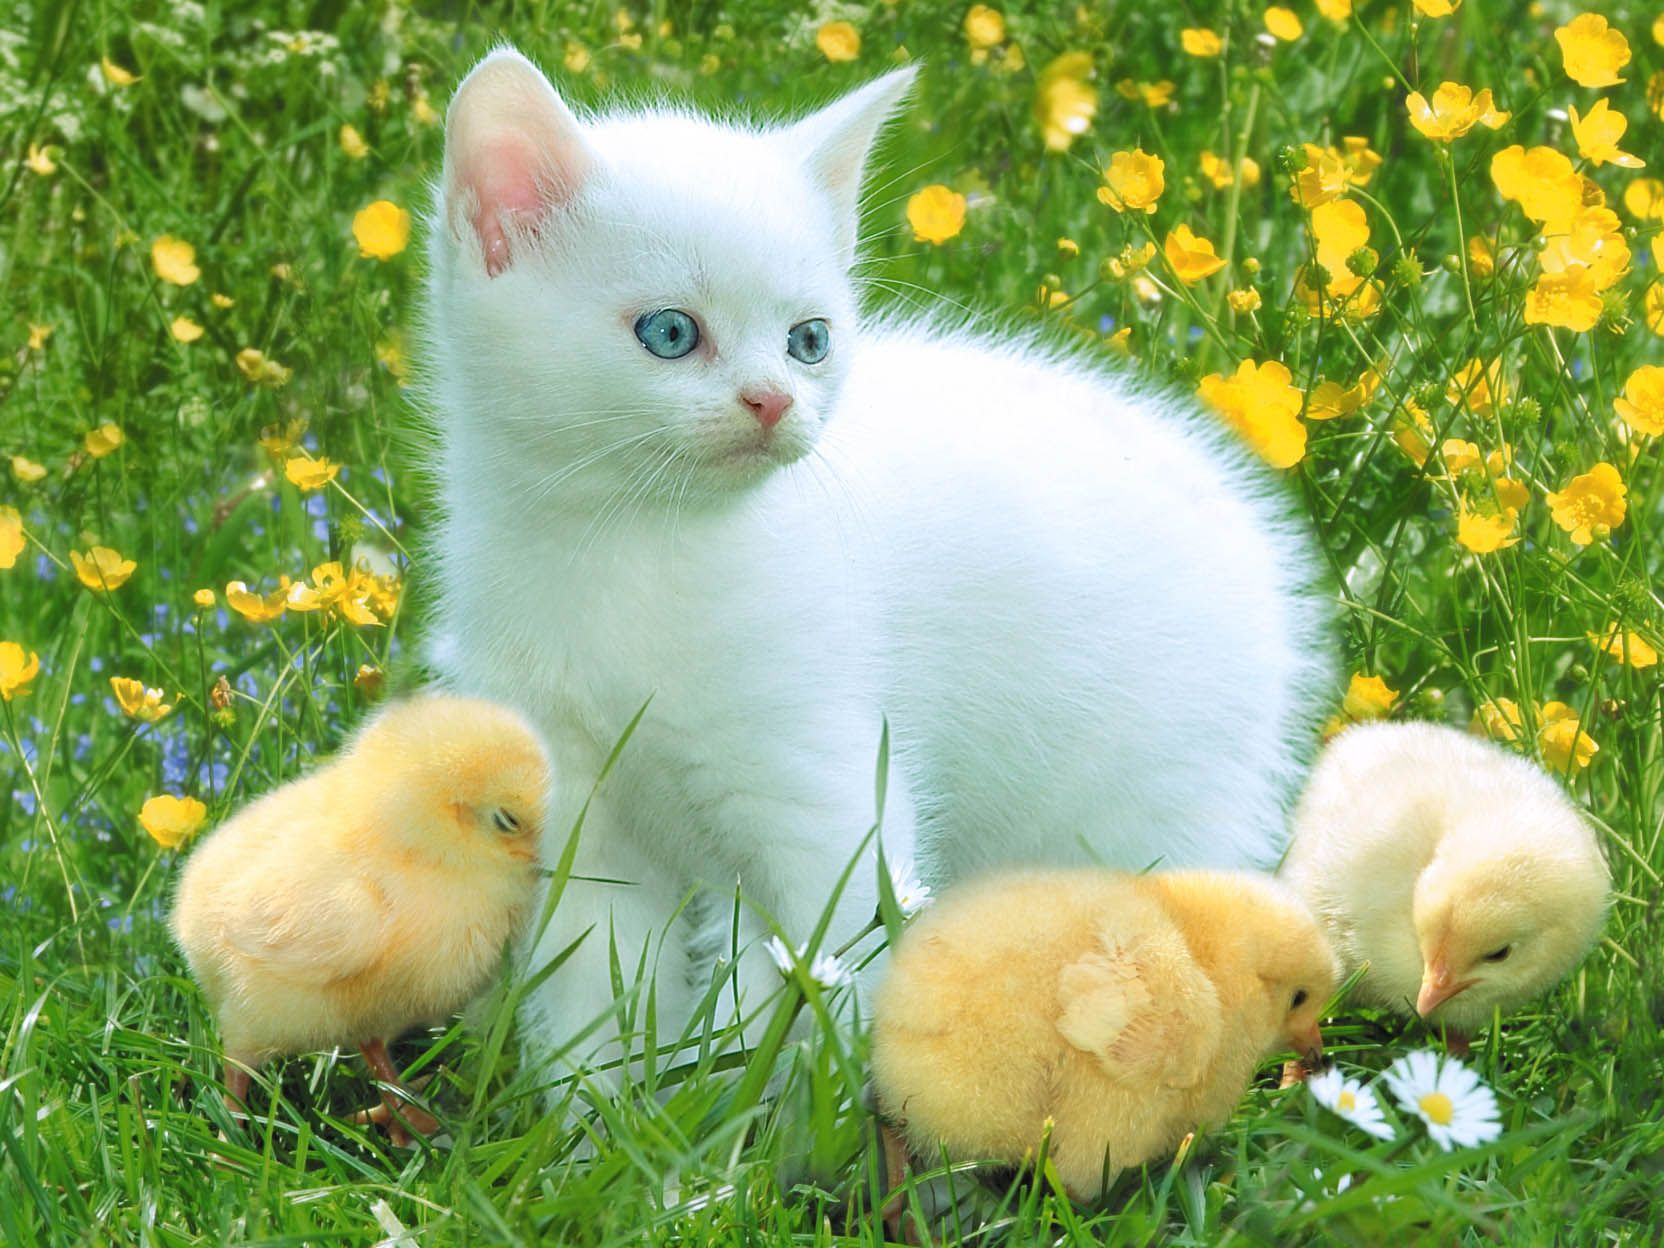 Free Desktop Wallpaper Nice Kitten And Chickens Around Cute Animals Cute Animal Pictures Cute Baby Animals